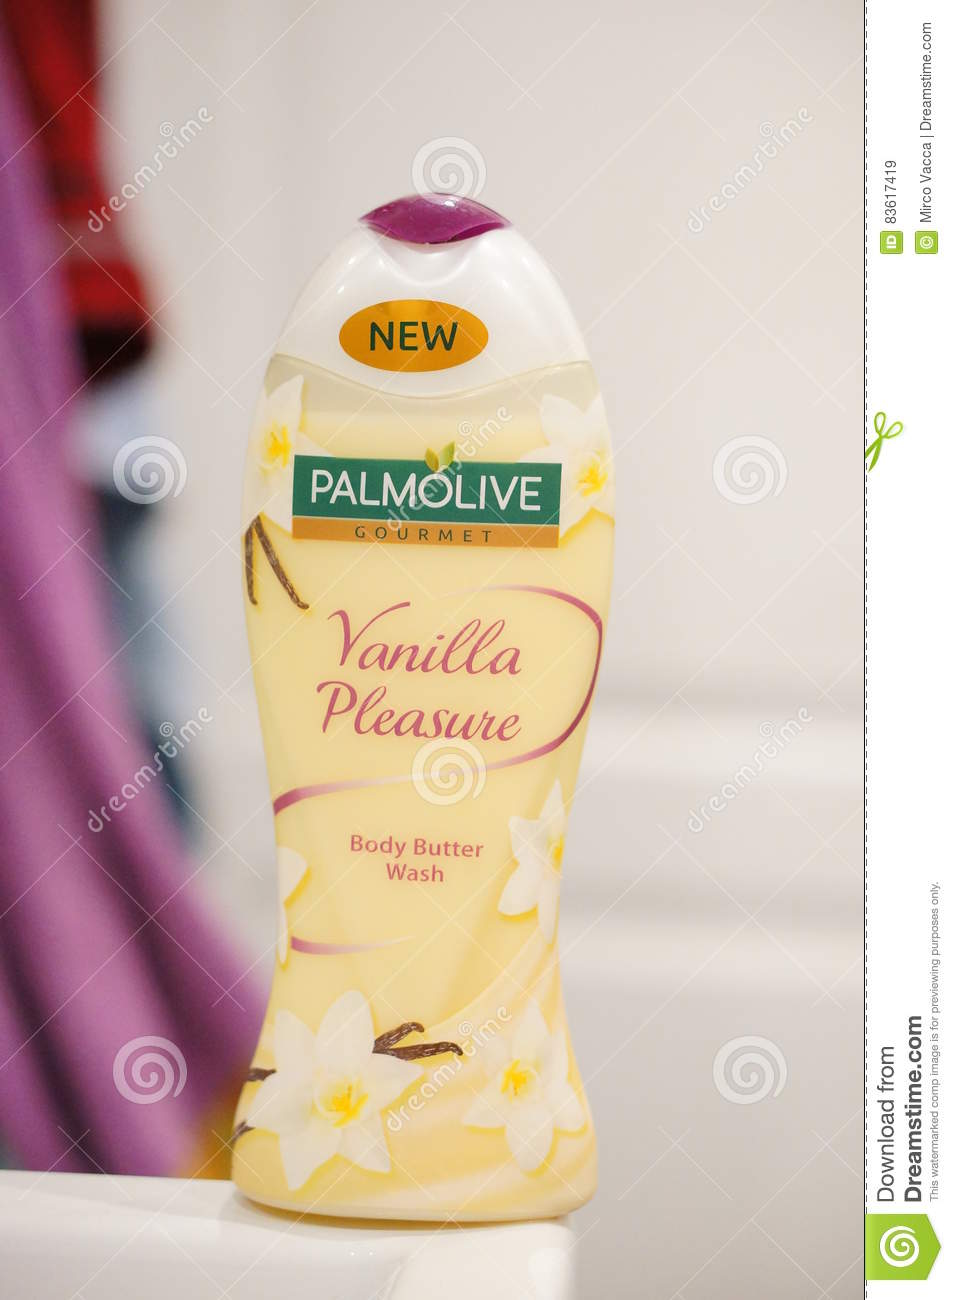 Palmolive Shower Gel Editorial Stock Image Of Care 83617419